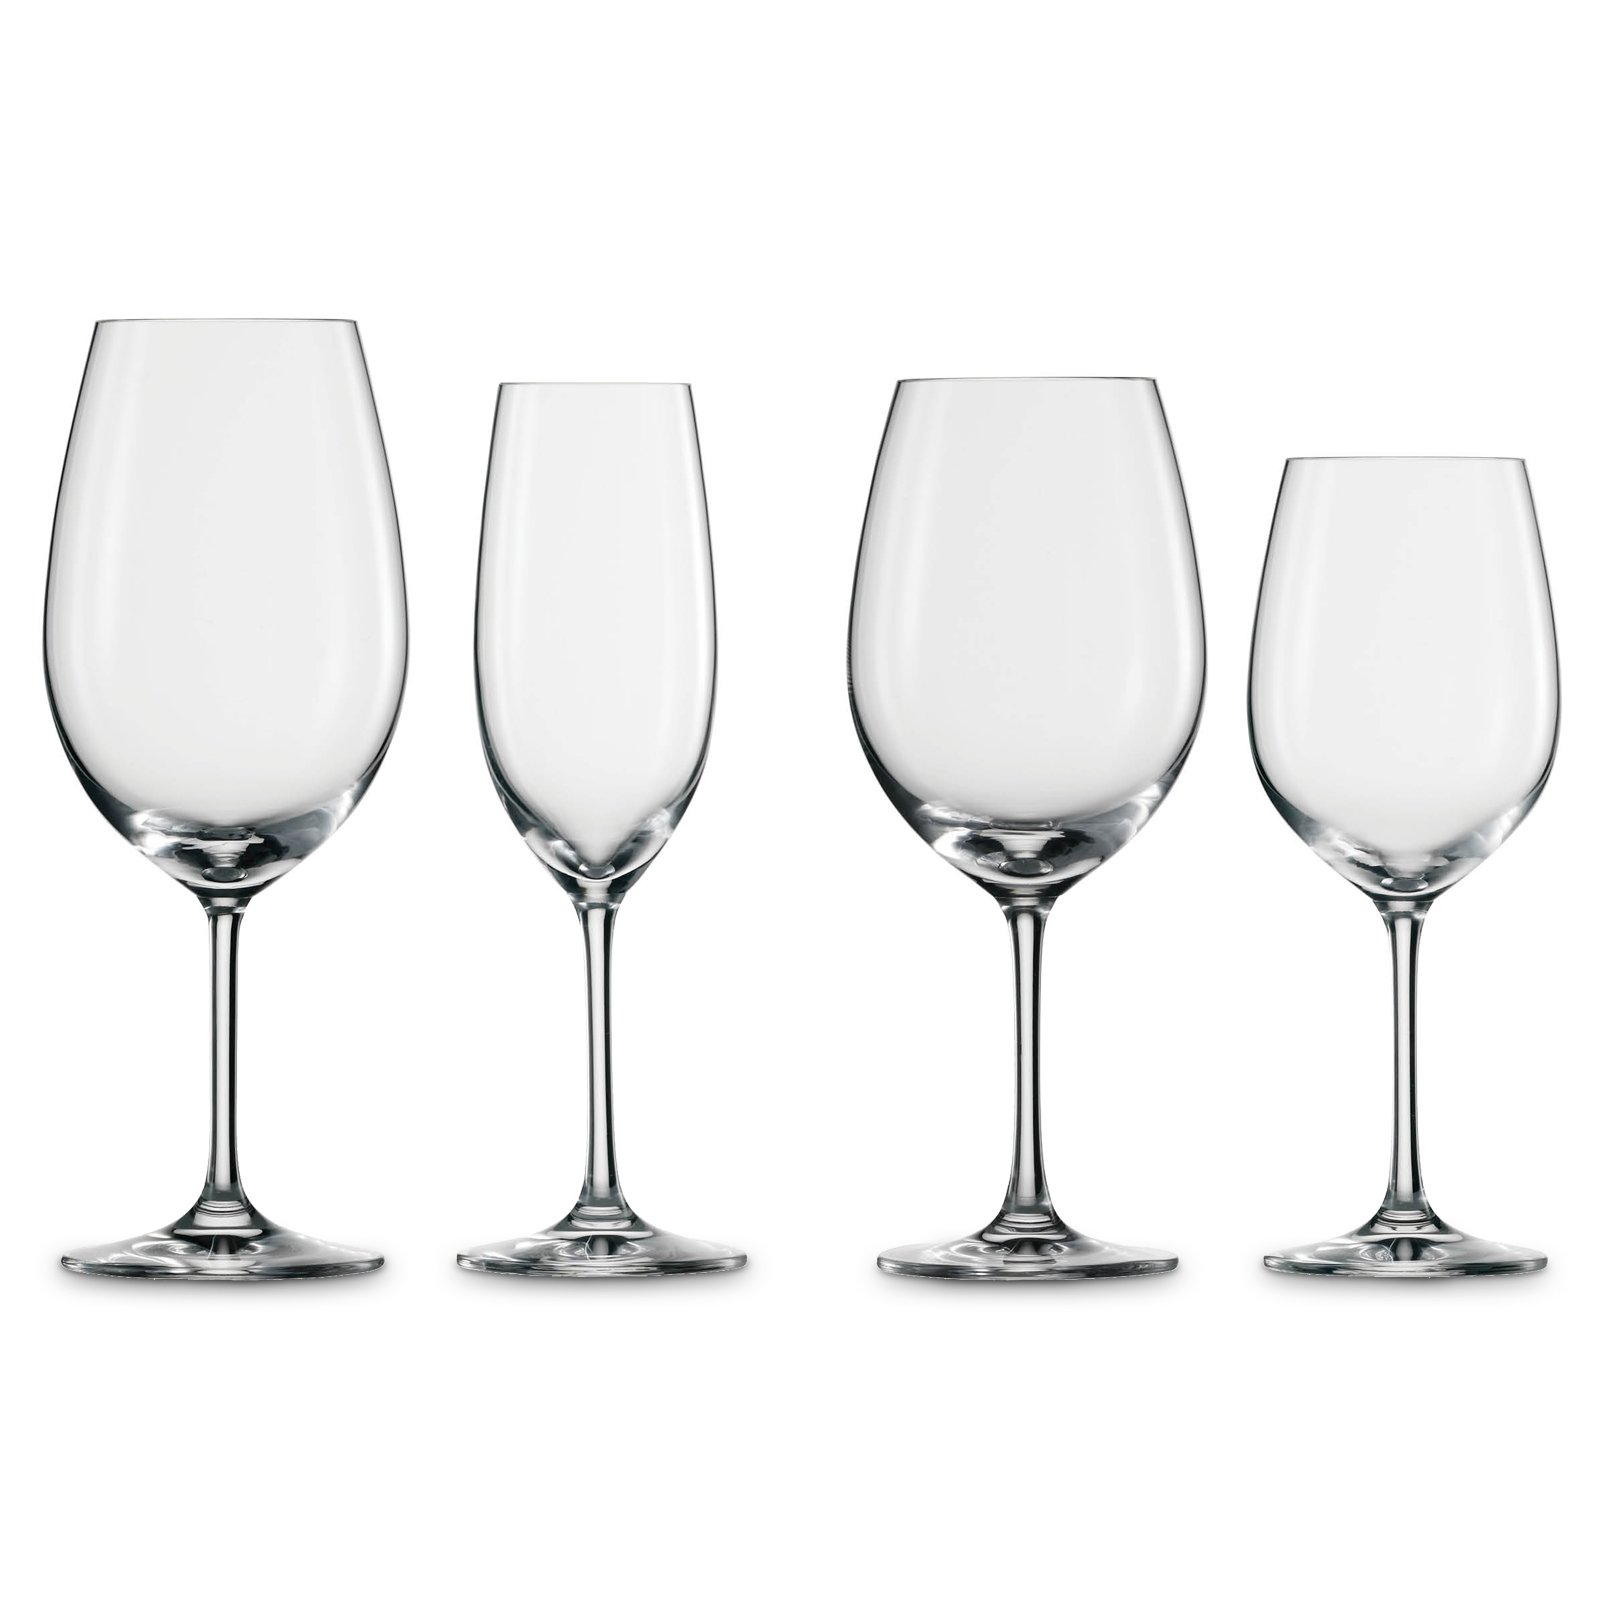 Schott Zwiesel Wine Glasses | Stolzle Wine Glasses | Sterling Dinnerware